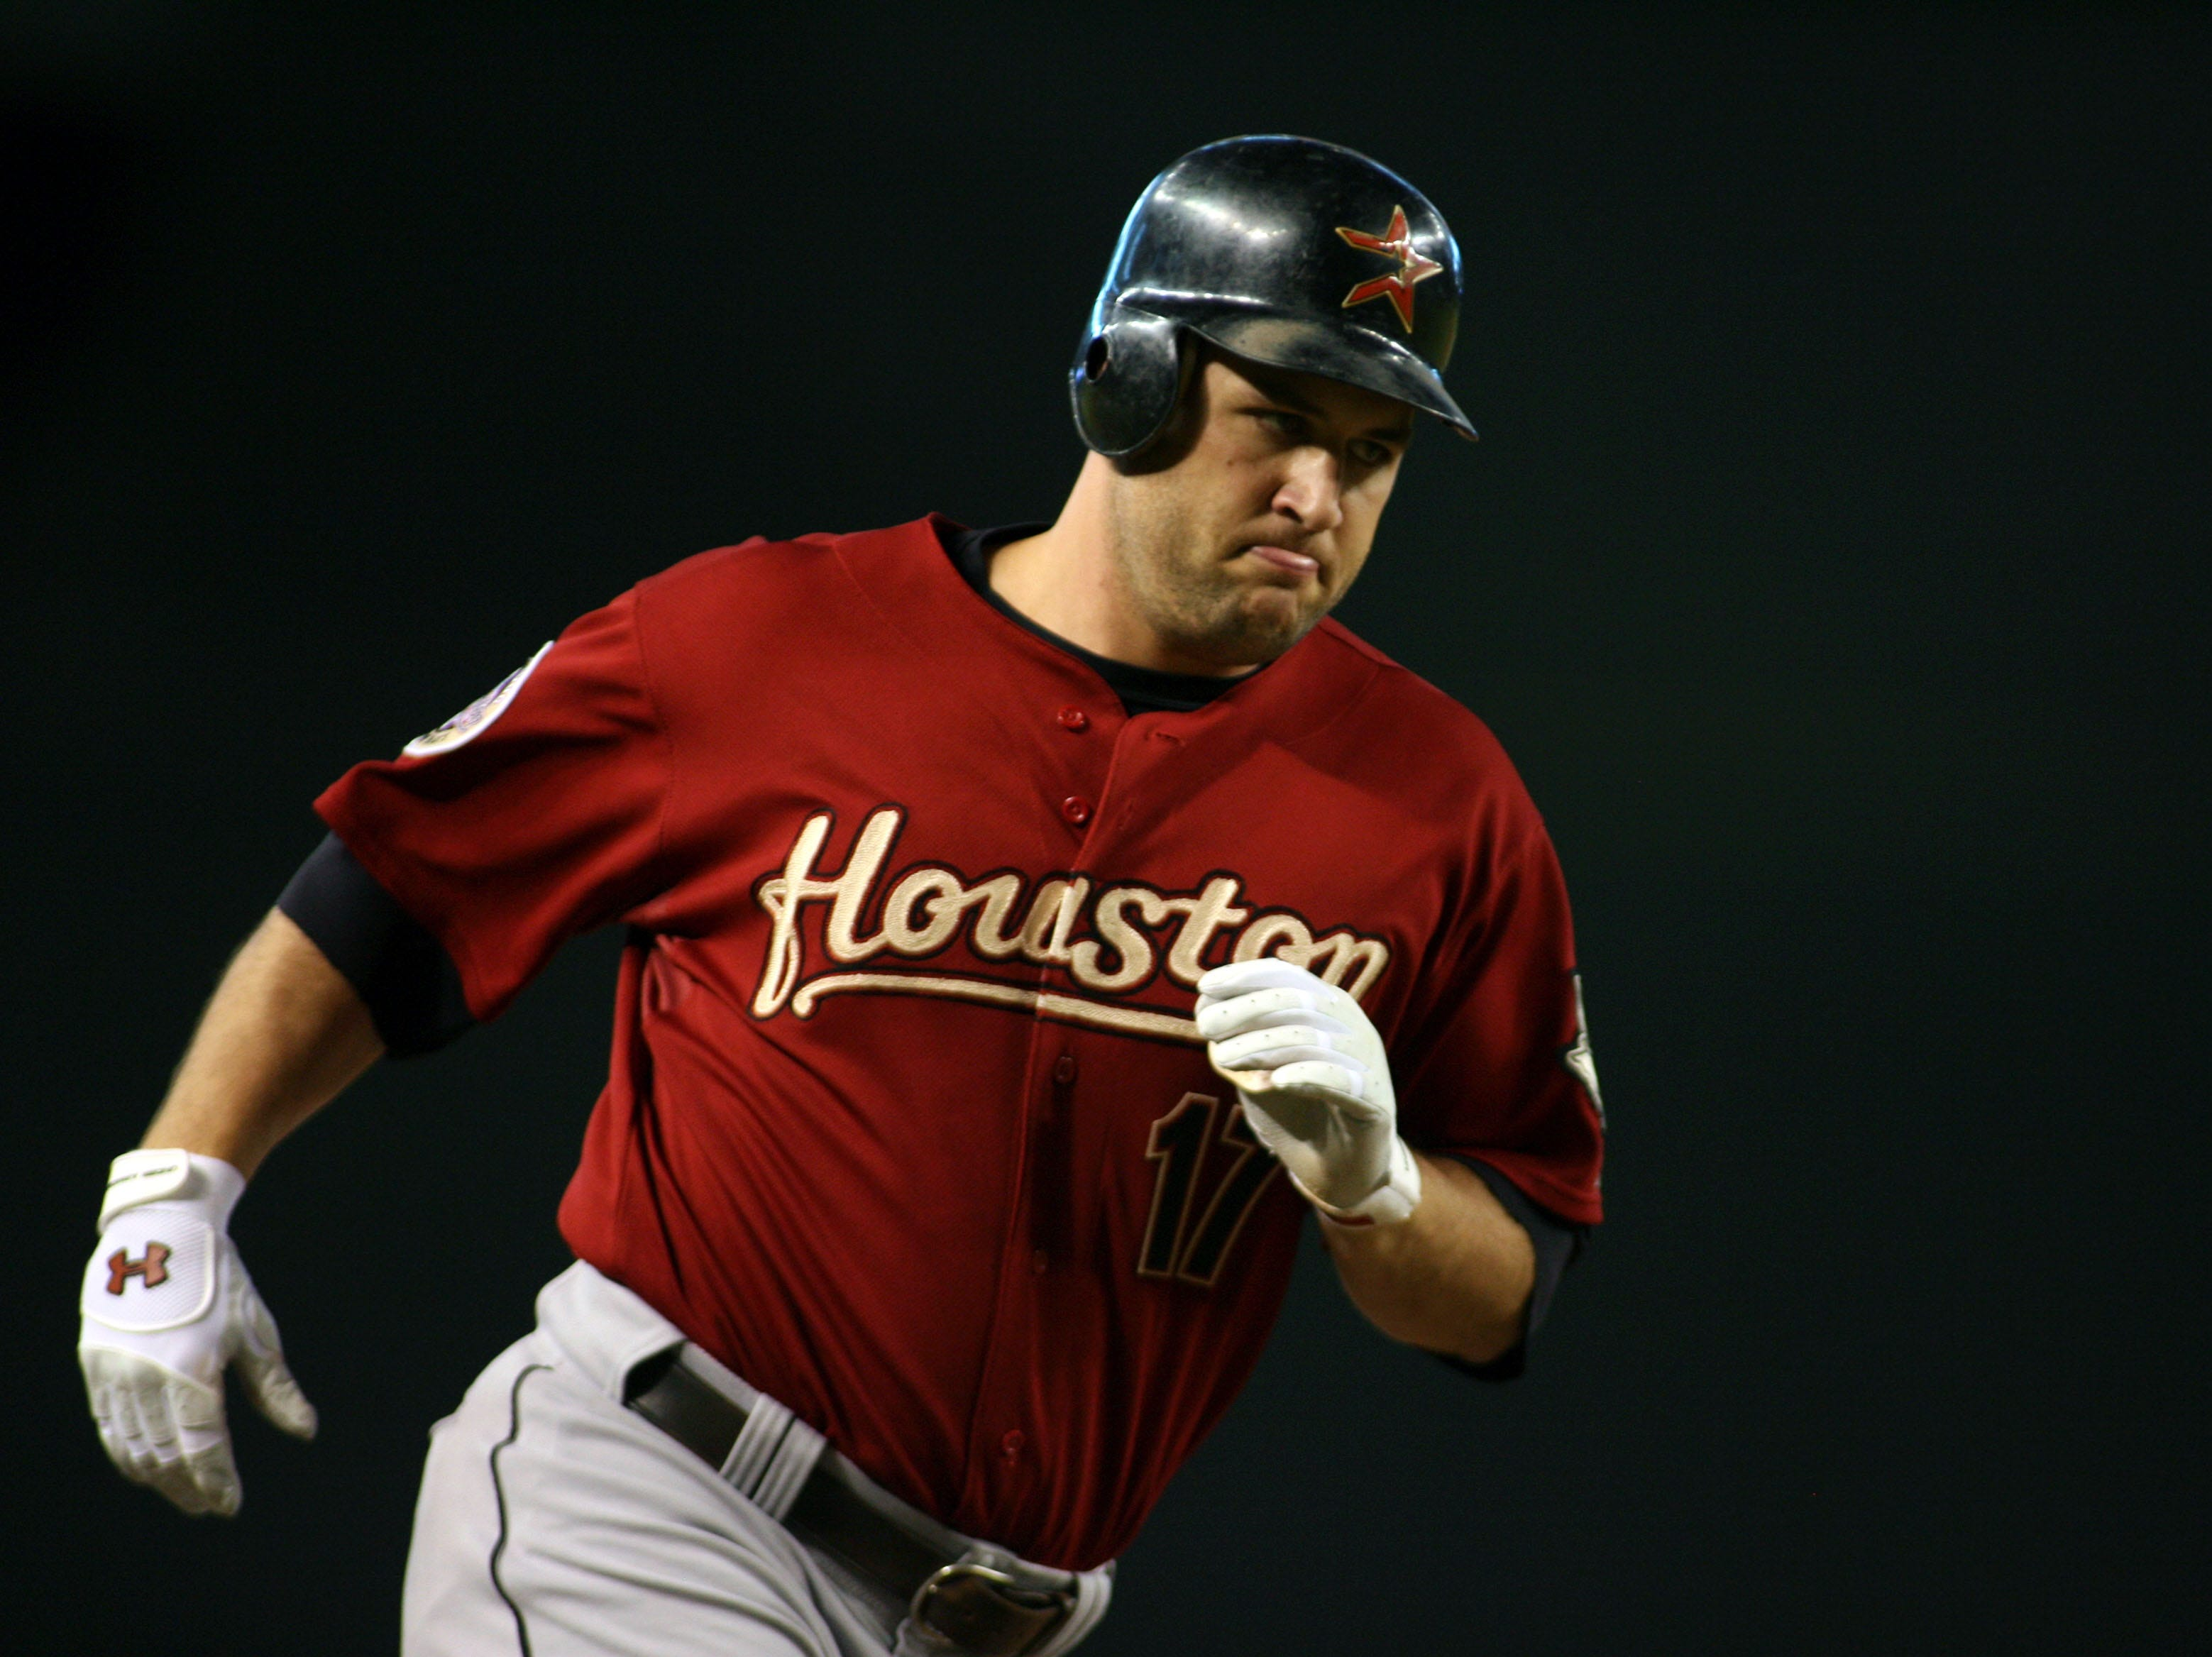 1B/OF Lance Berkman (1st year)